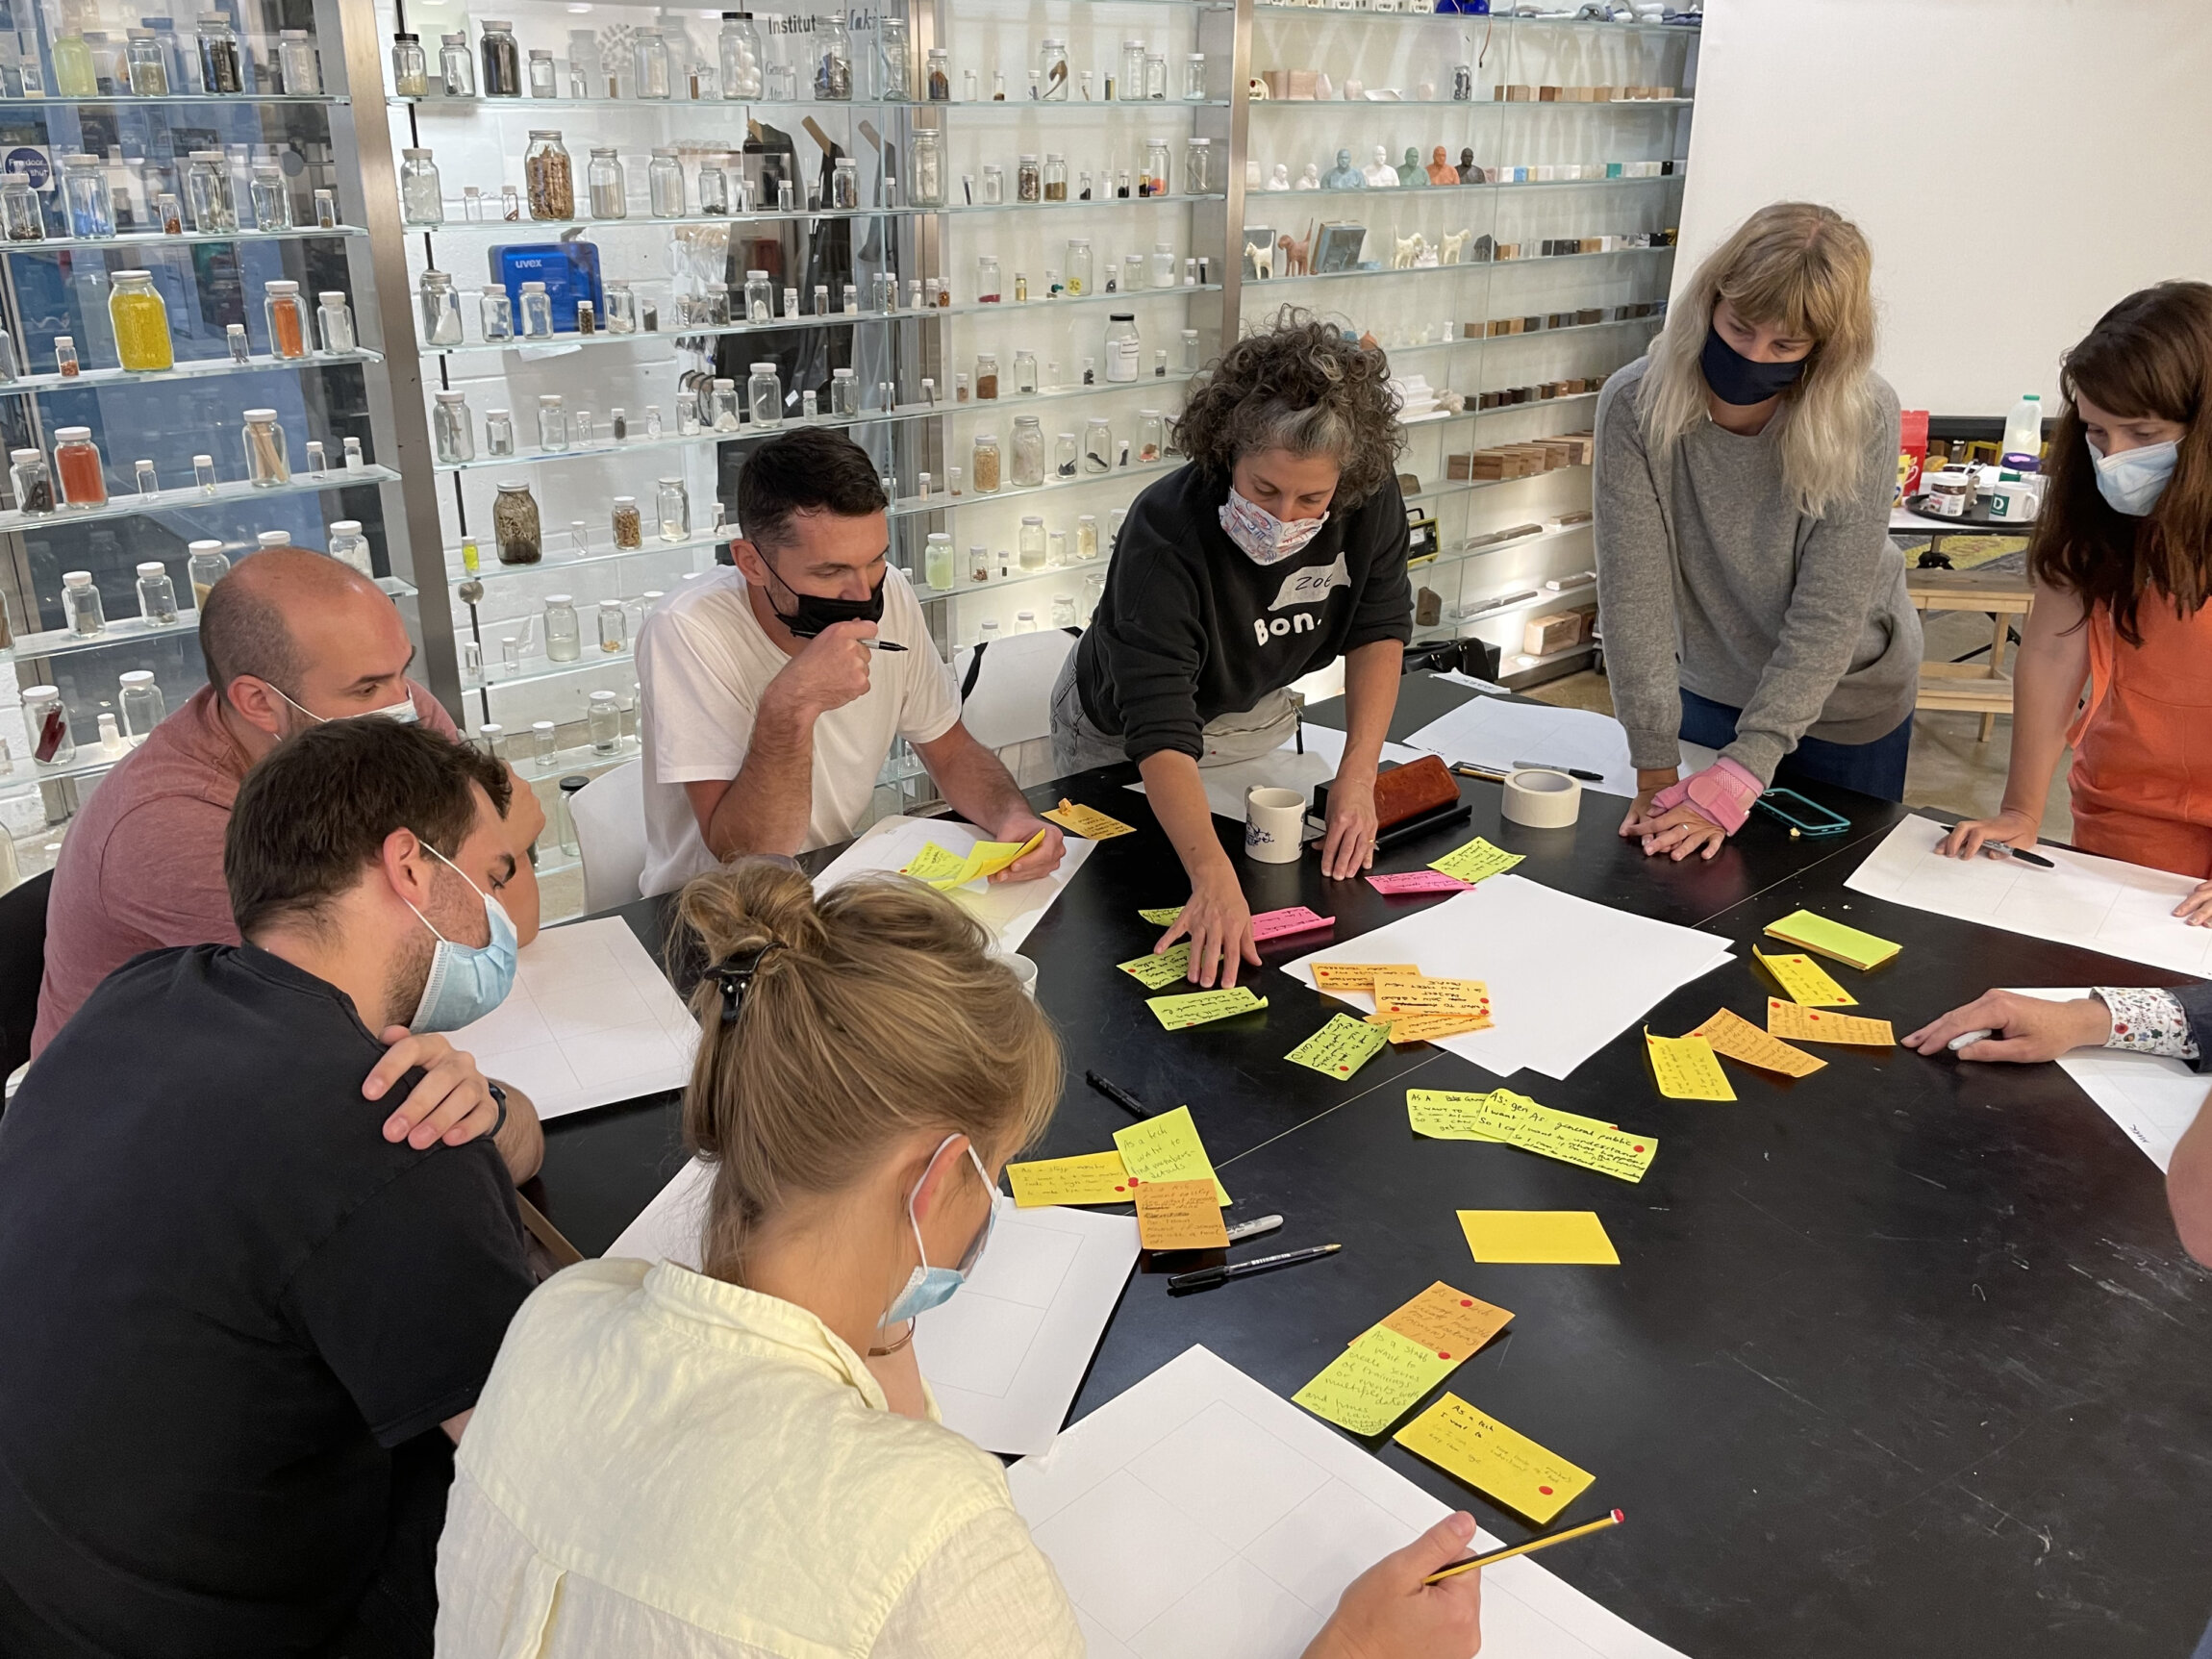 Women and men collaborate on a user experience workshop, post its and notebooks are strewn over a table